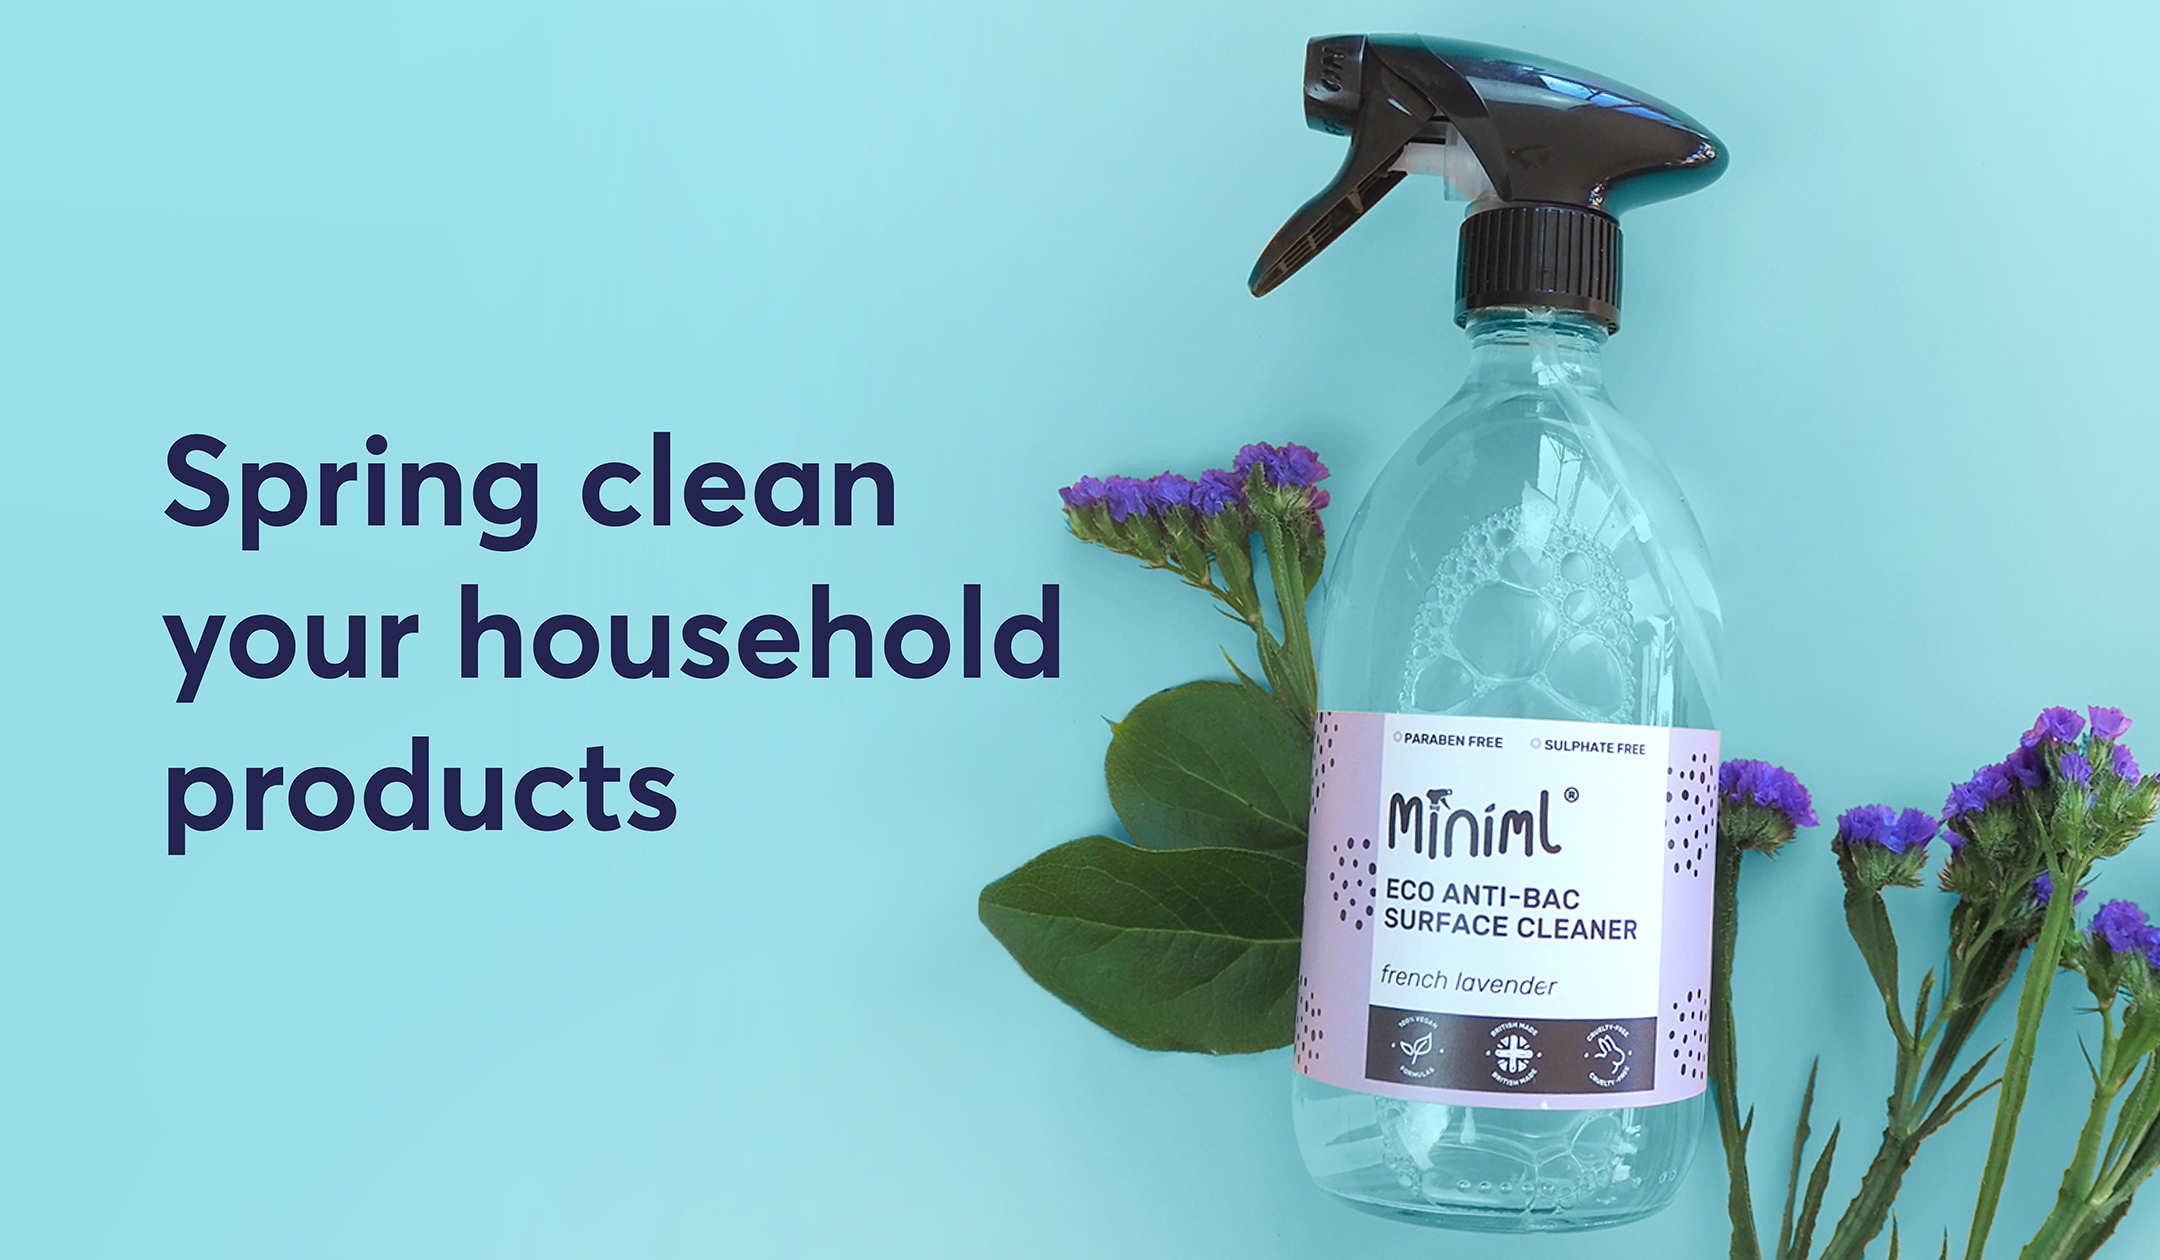 Time to ditch the chemicals under your sink?